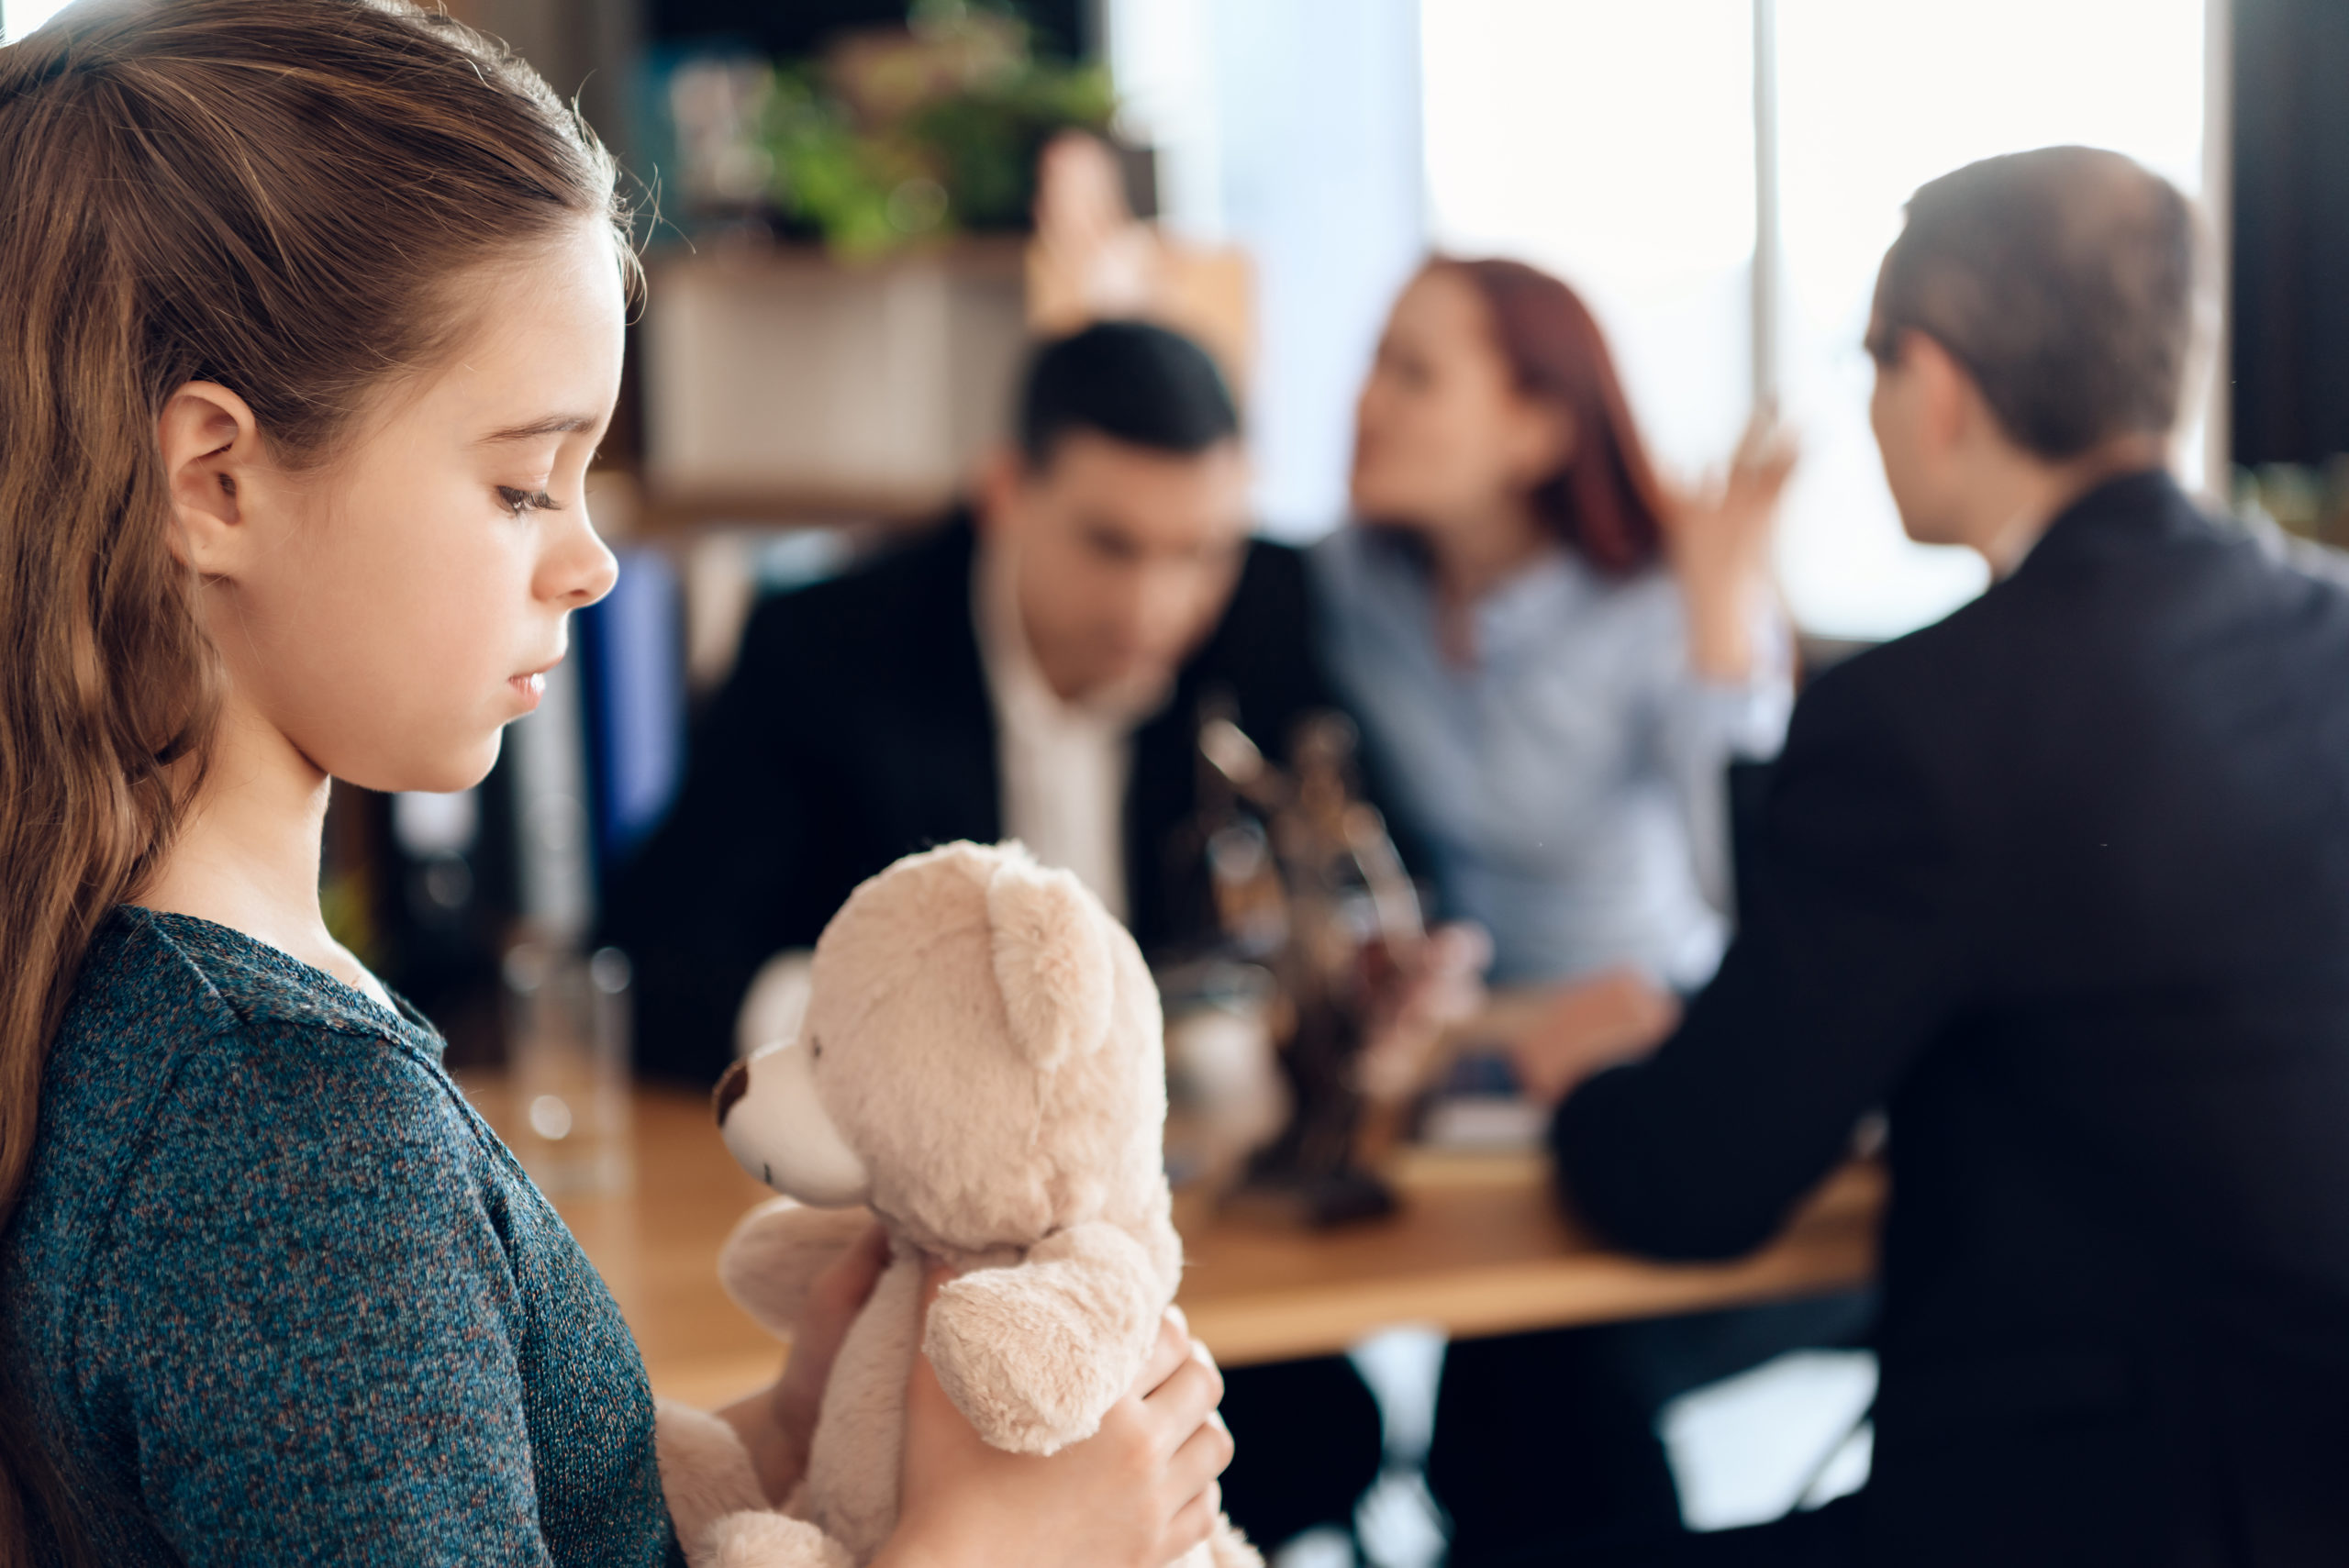 Separation and Divorce Mediation: Foundations, Parenting Plans, and Child Support - Online, October 2021